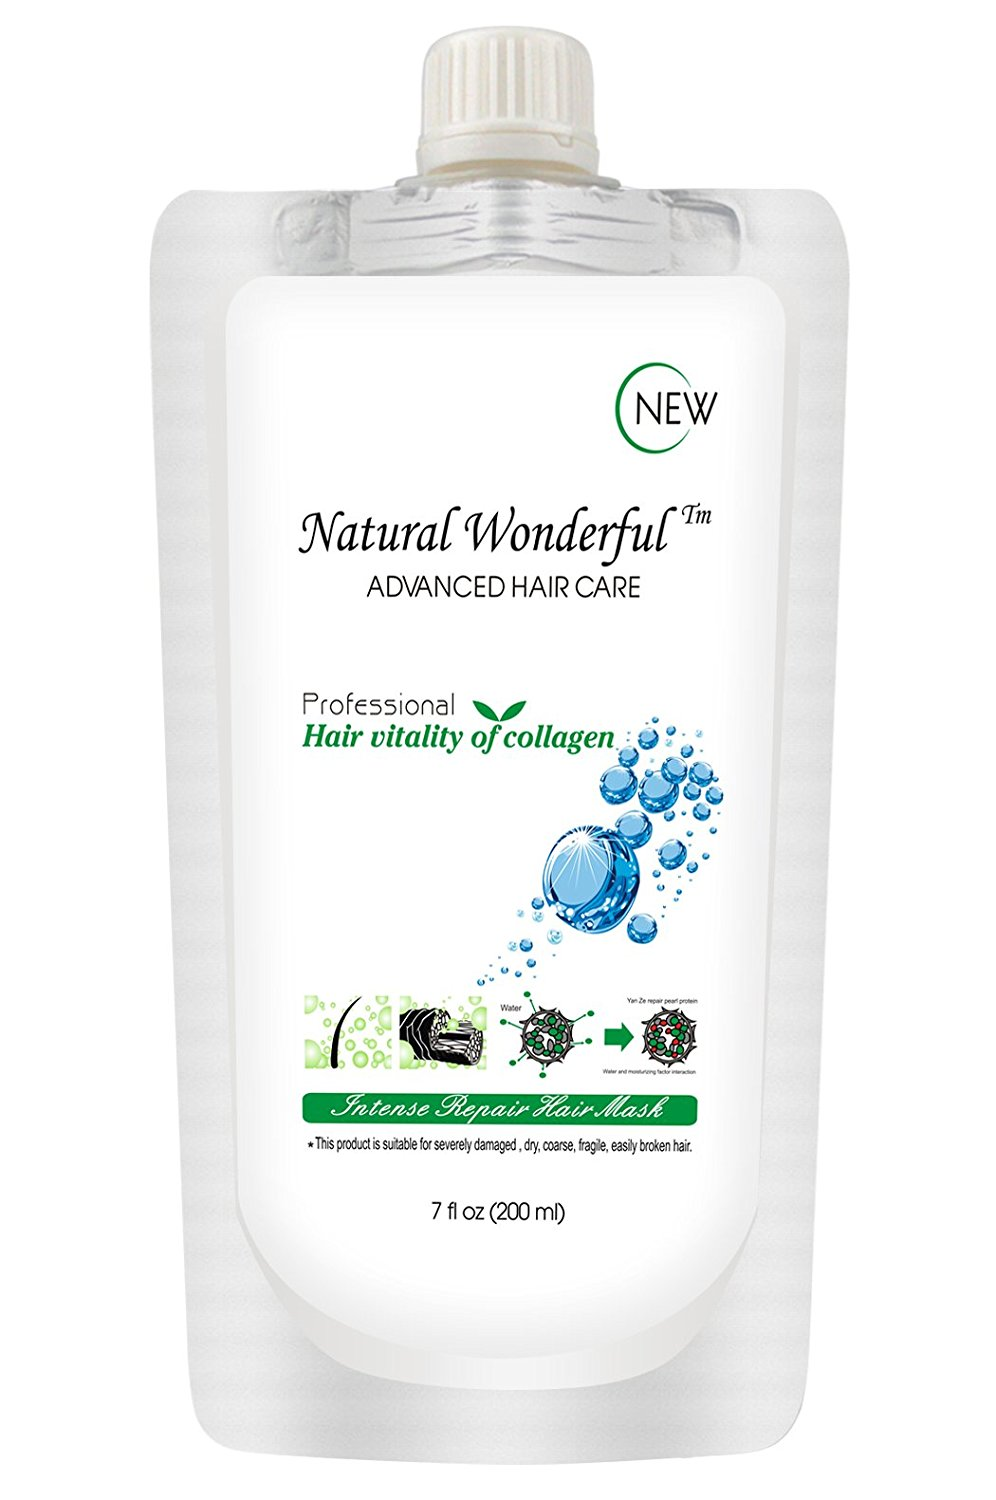 Hair Repair Mask 200ml, Deep Conditioner for Damaged & Dry Hair, Nourishes Scalp, Deep Conditioning Treatment for Split Ends & Frizz